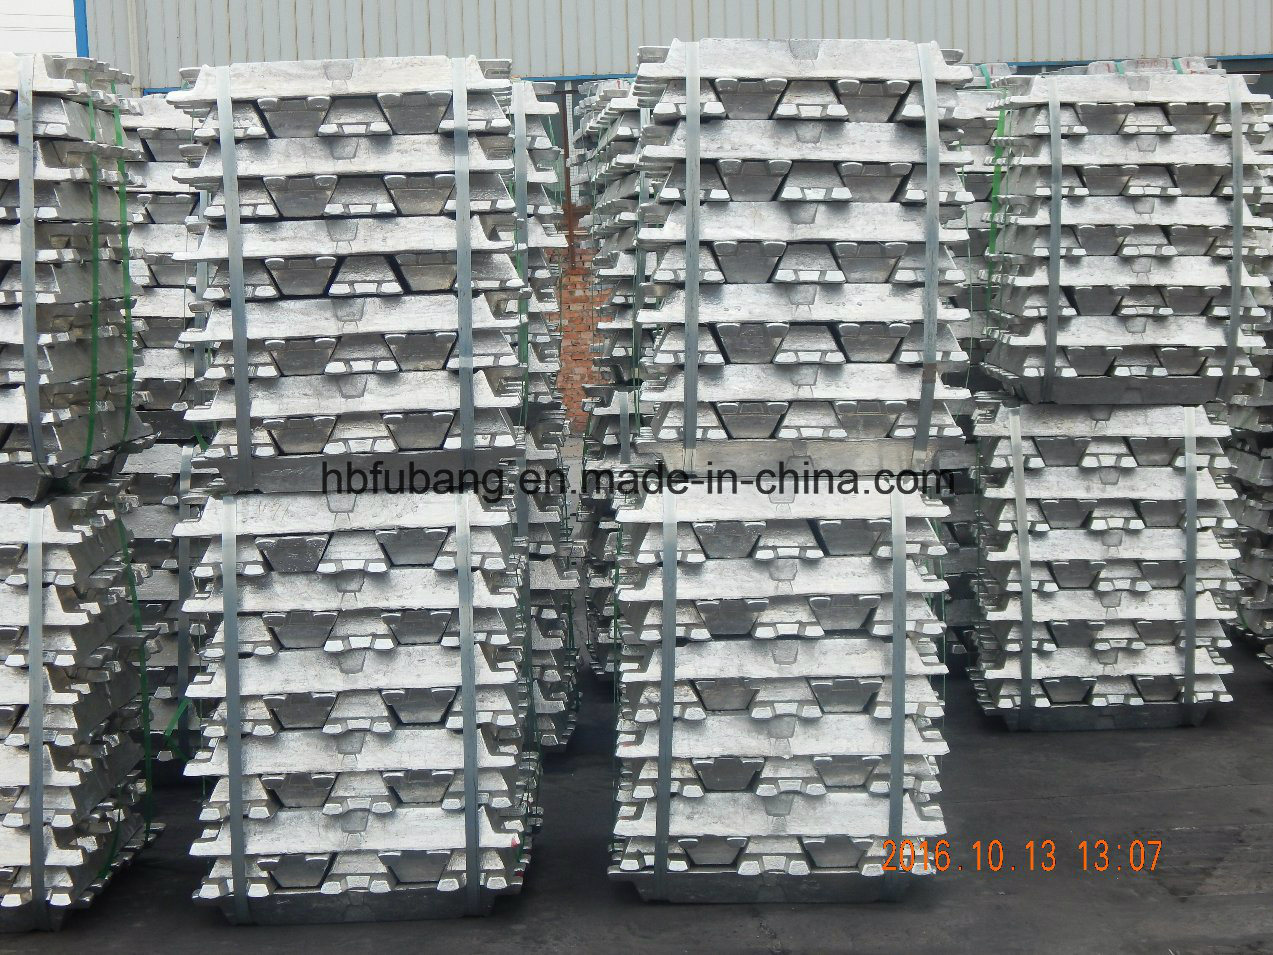 2017 Hot Sale Aluminum Ingot 99.9% From Chinese Factory with Top Quality